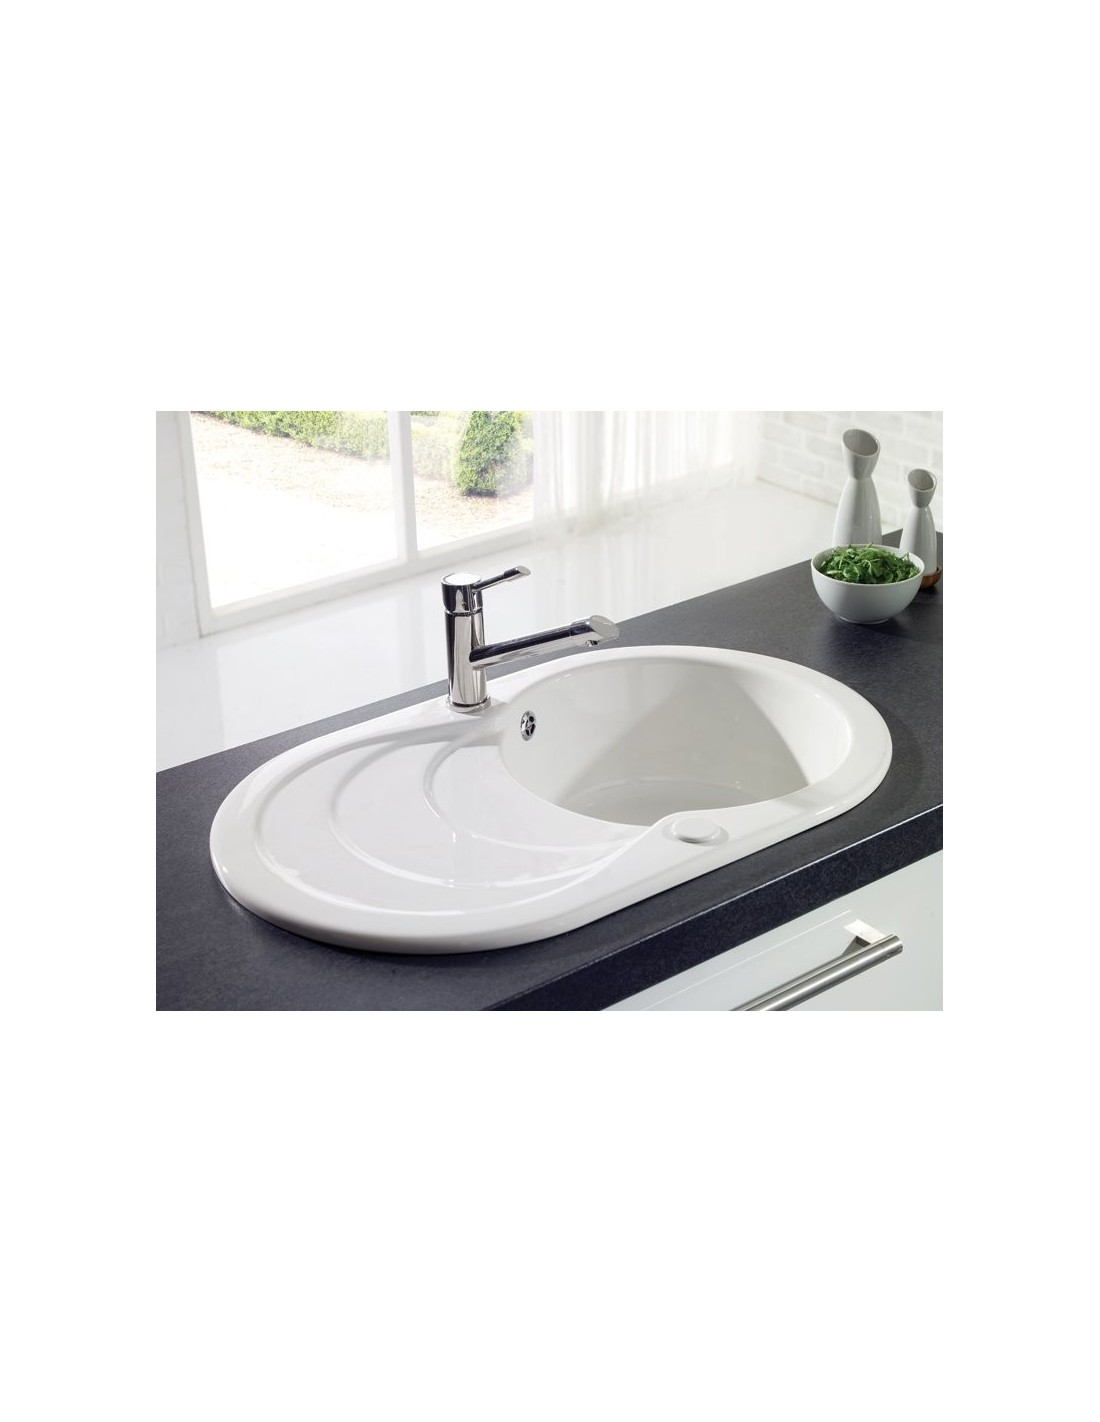 ceramic kitchen sinks uk denby sonnet so1b 1 0 bowl sink white glossy 5182